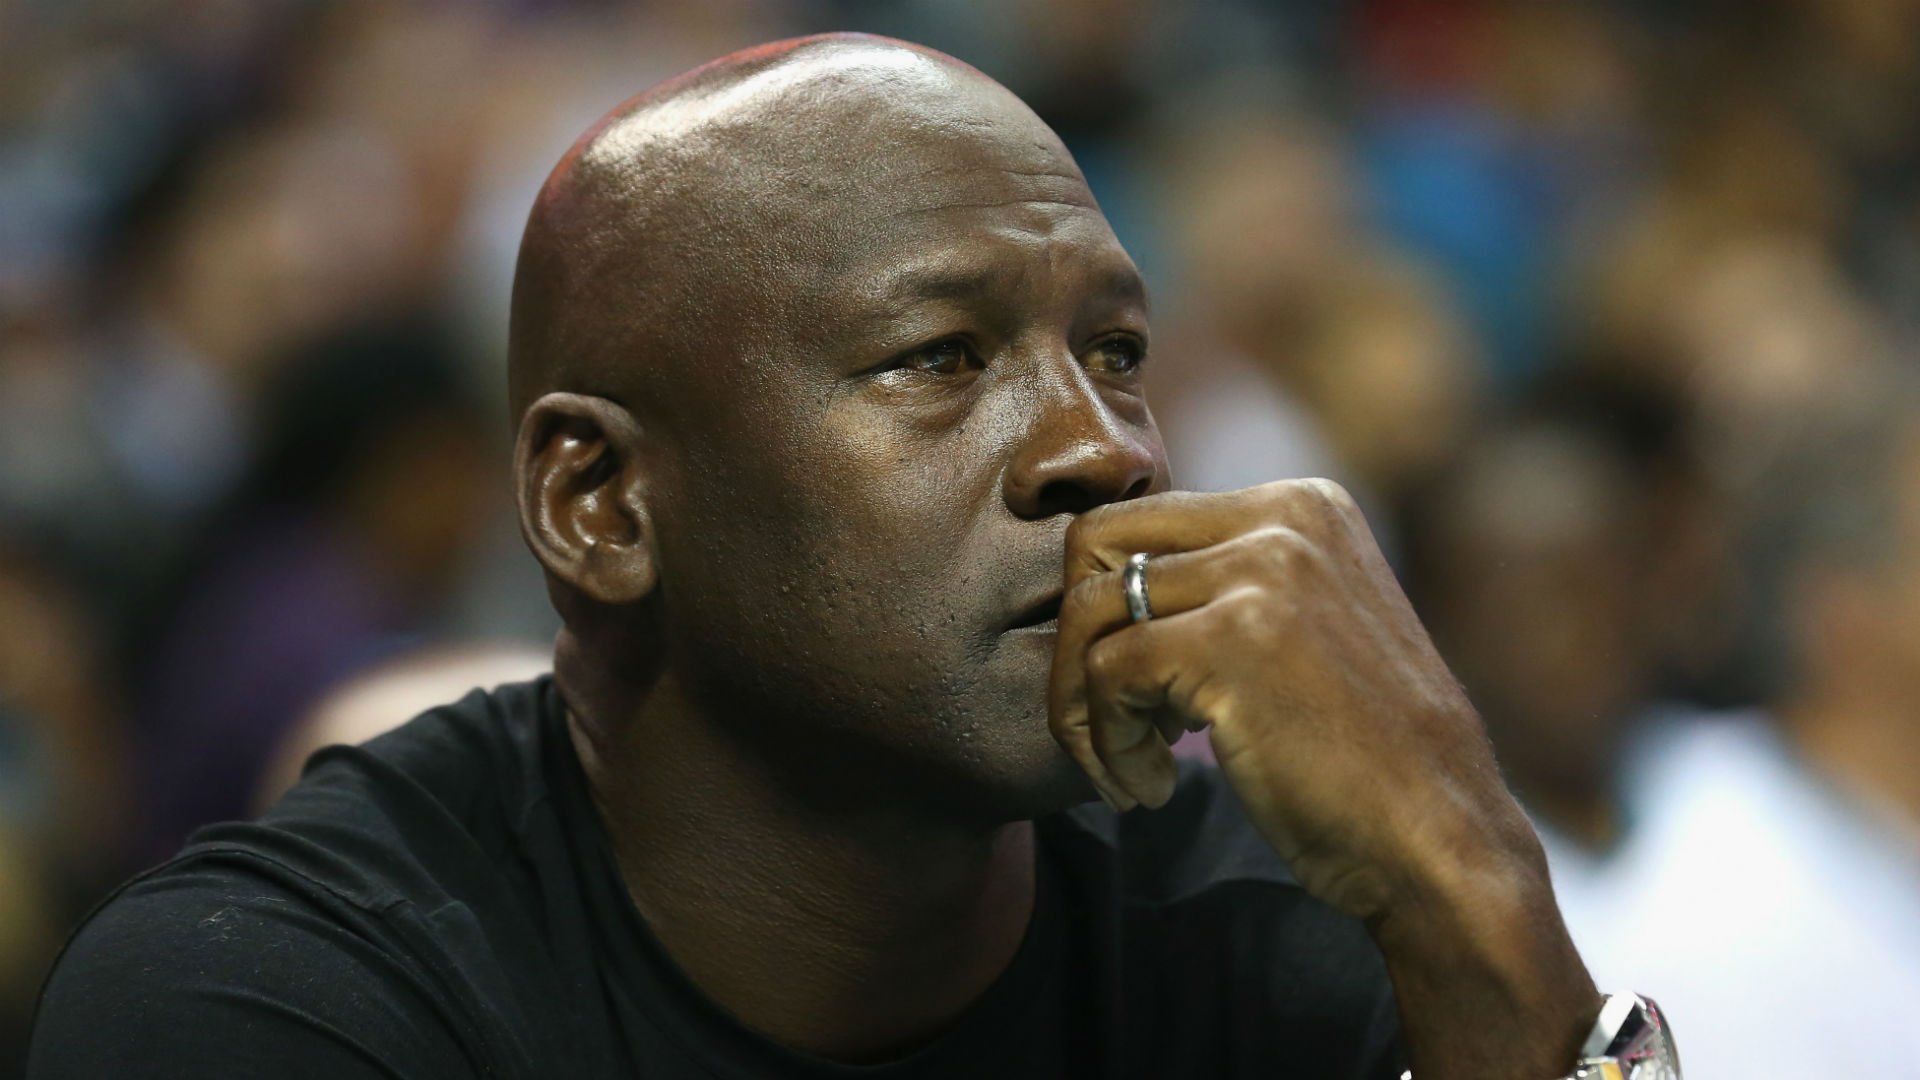 Michael Jordan 'pained, angry' over George Floyd's death